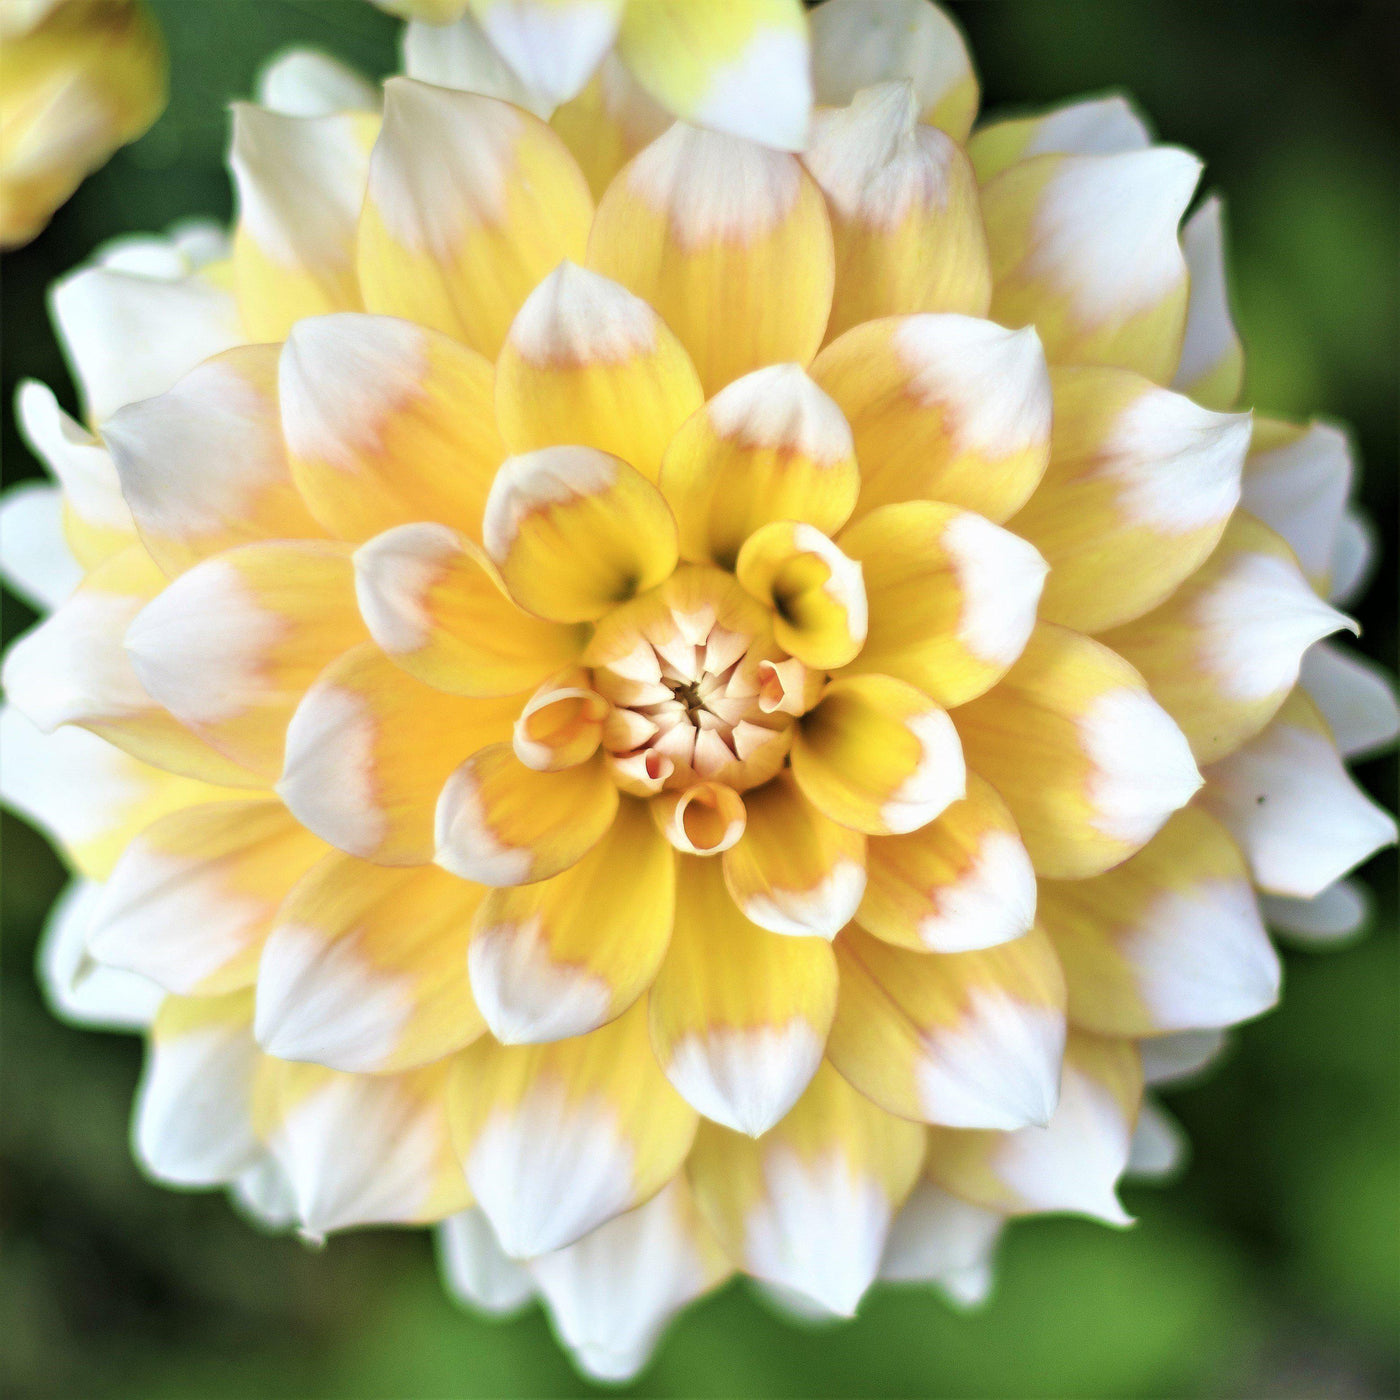 Dinner plate dahlia seattle yellow and white dinner plate dahlia dahlia seattle izmirmasajfo